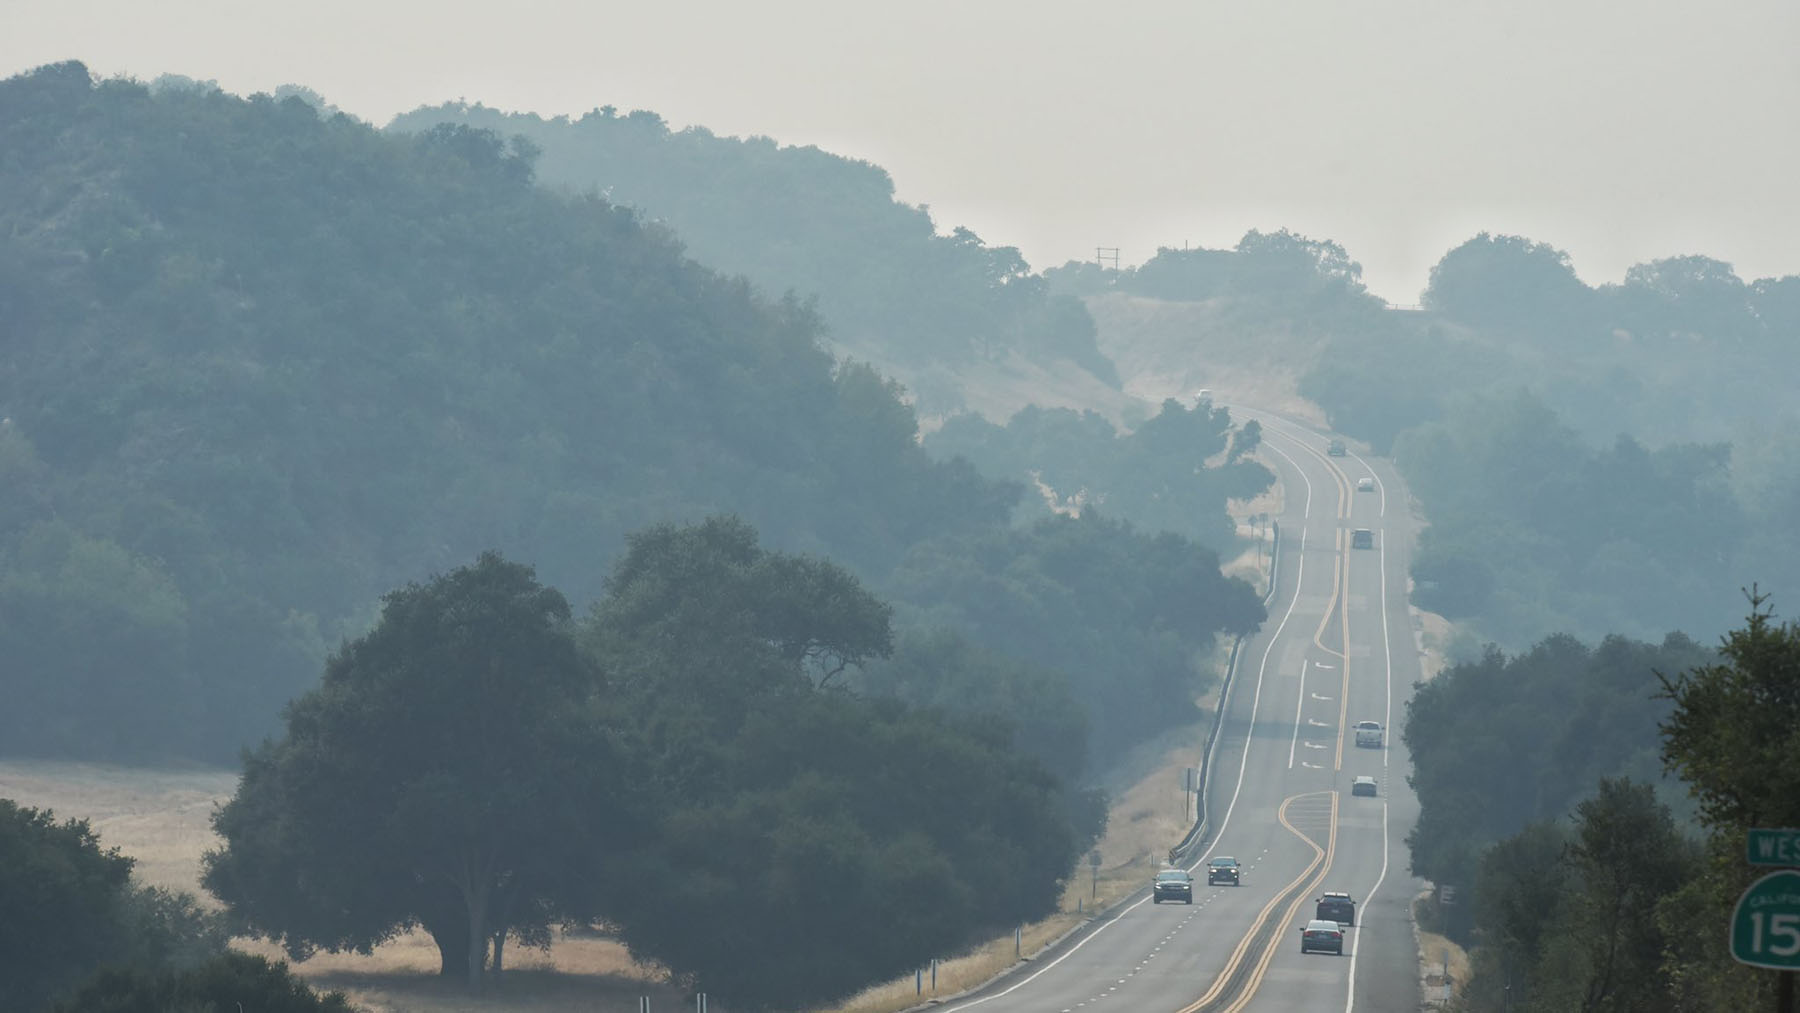 Smoky conditions are seen along Highway 154 in Santa Barbara County, California, miles from any active fires when this photo was taken on August 19, 2020. Large fires burning in California have resulted in poor air quality in many places across the state, and the particulates from smoke can exacerbate respiratory health conditions. (Photo by Mike Eliason/Santa Barbara County Fire Department)